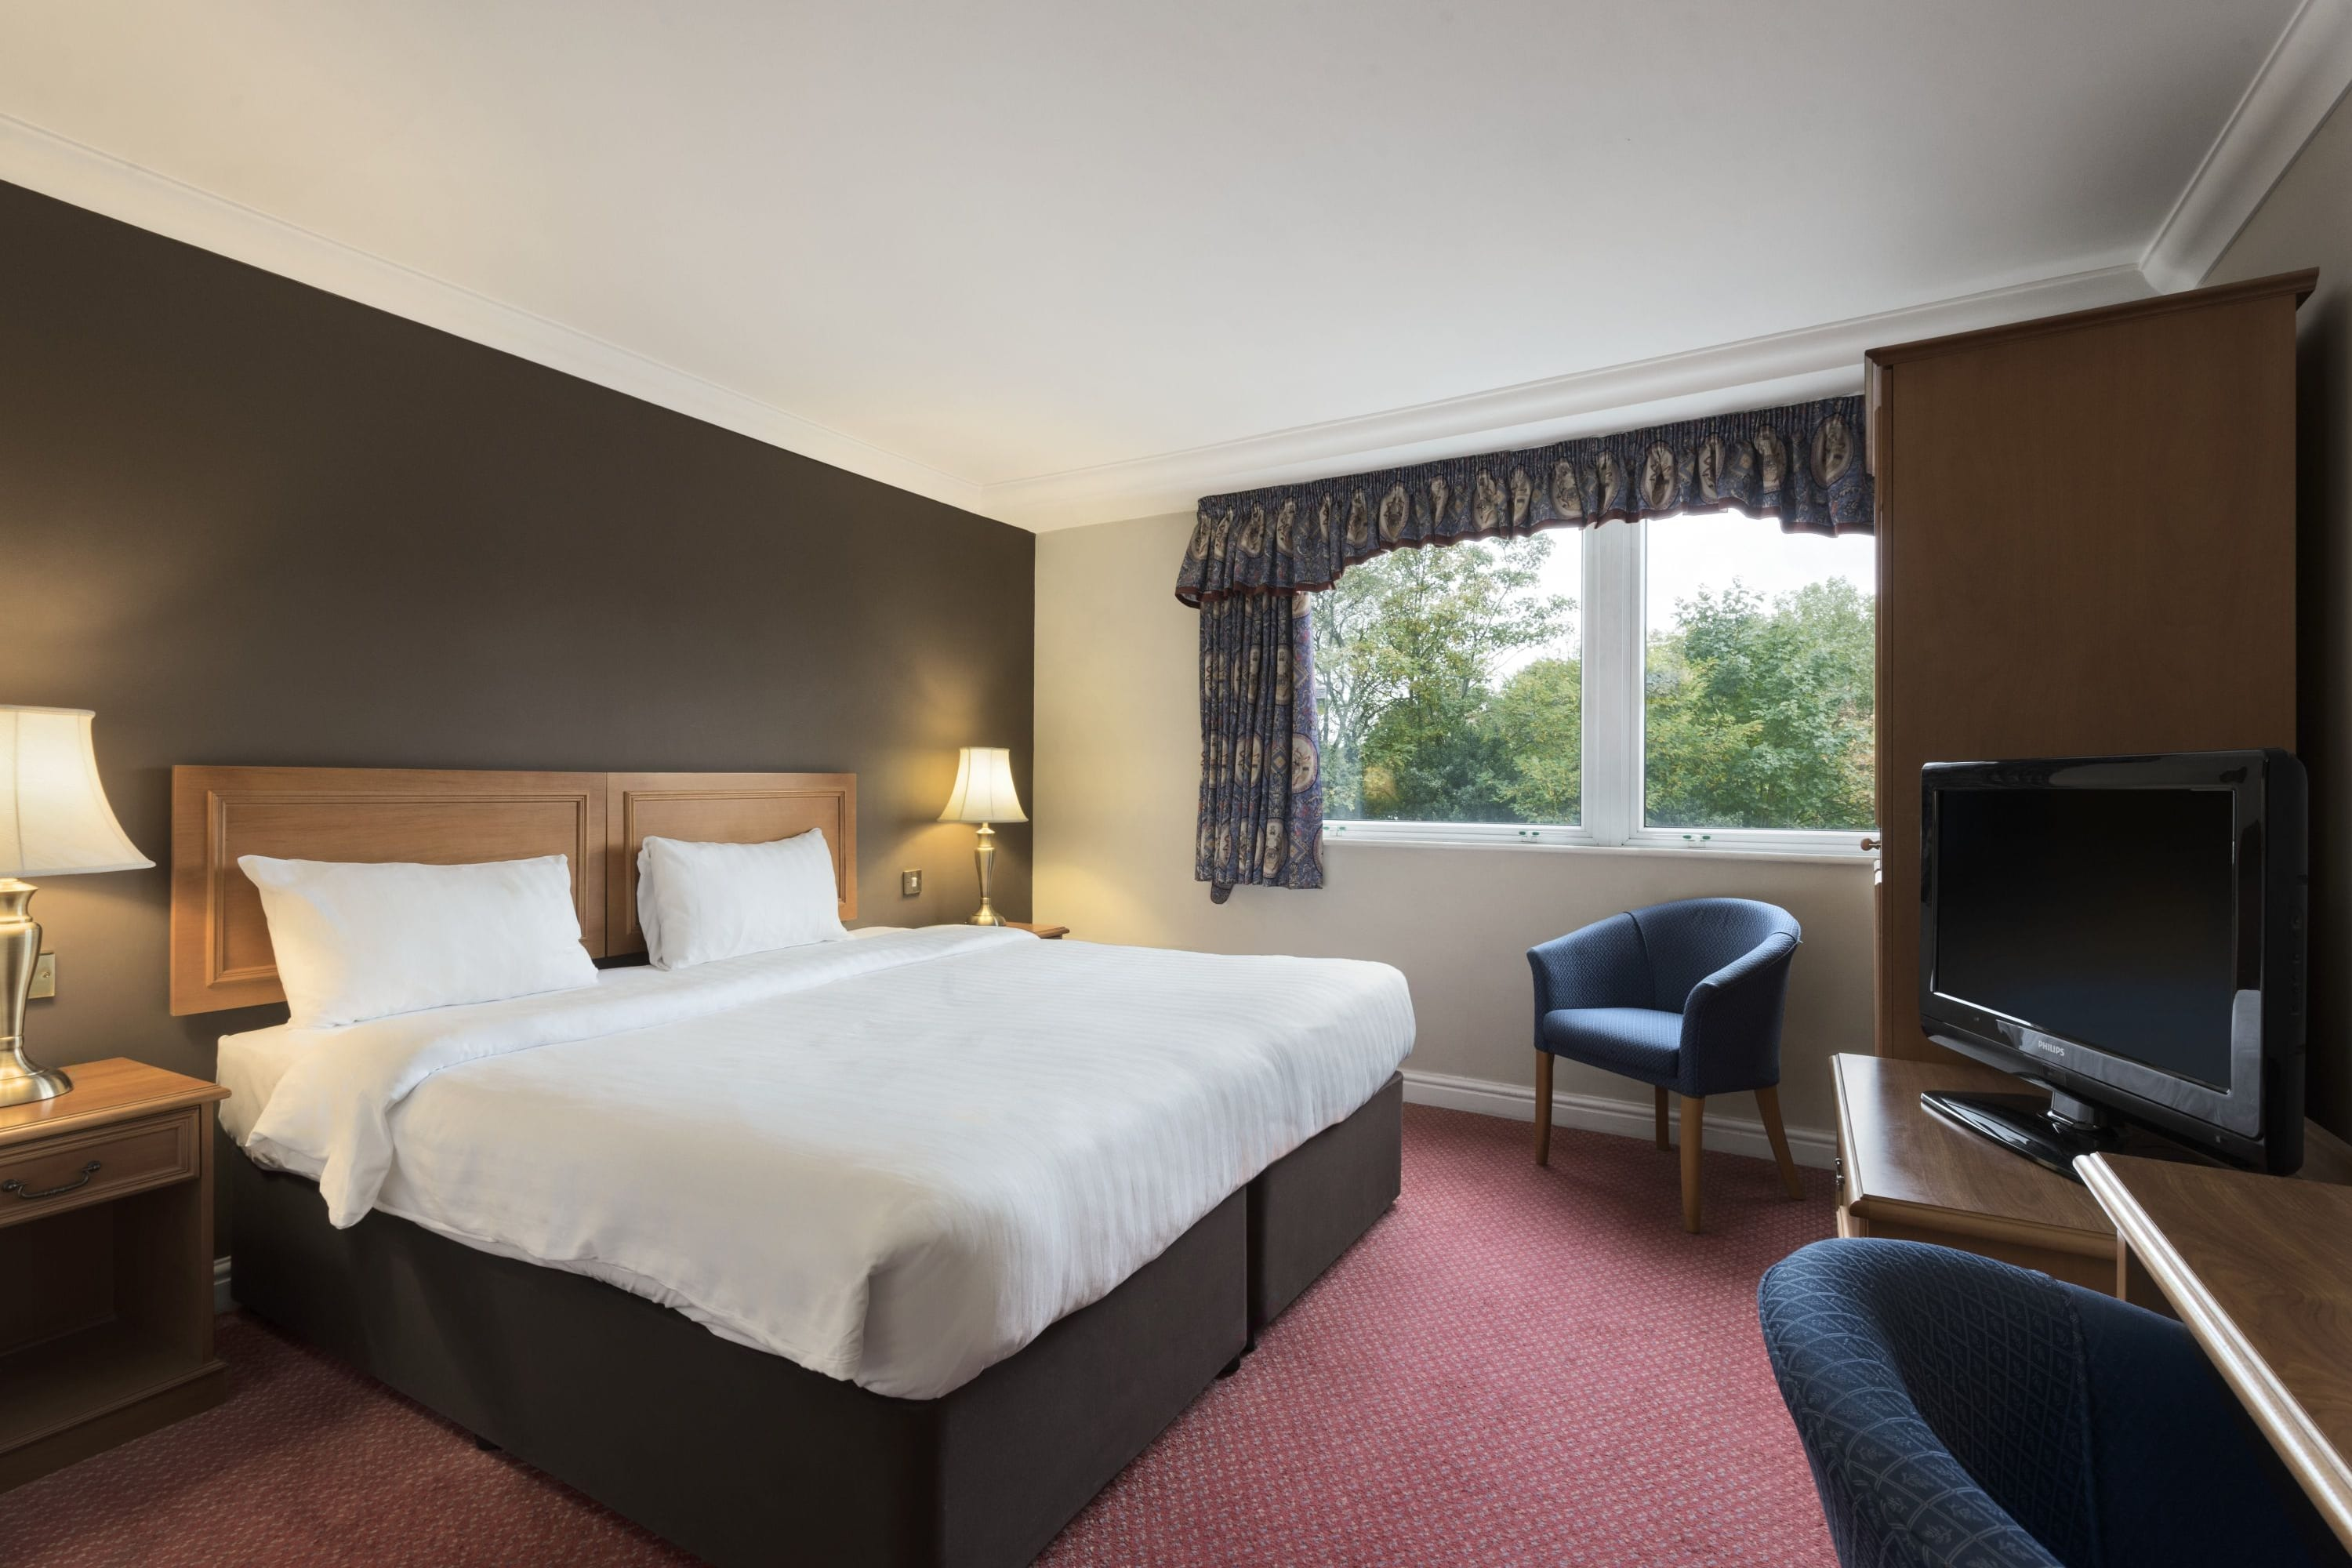 Guest room at the Days Hotel Coventry in Coventry, Other than US/Canada